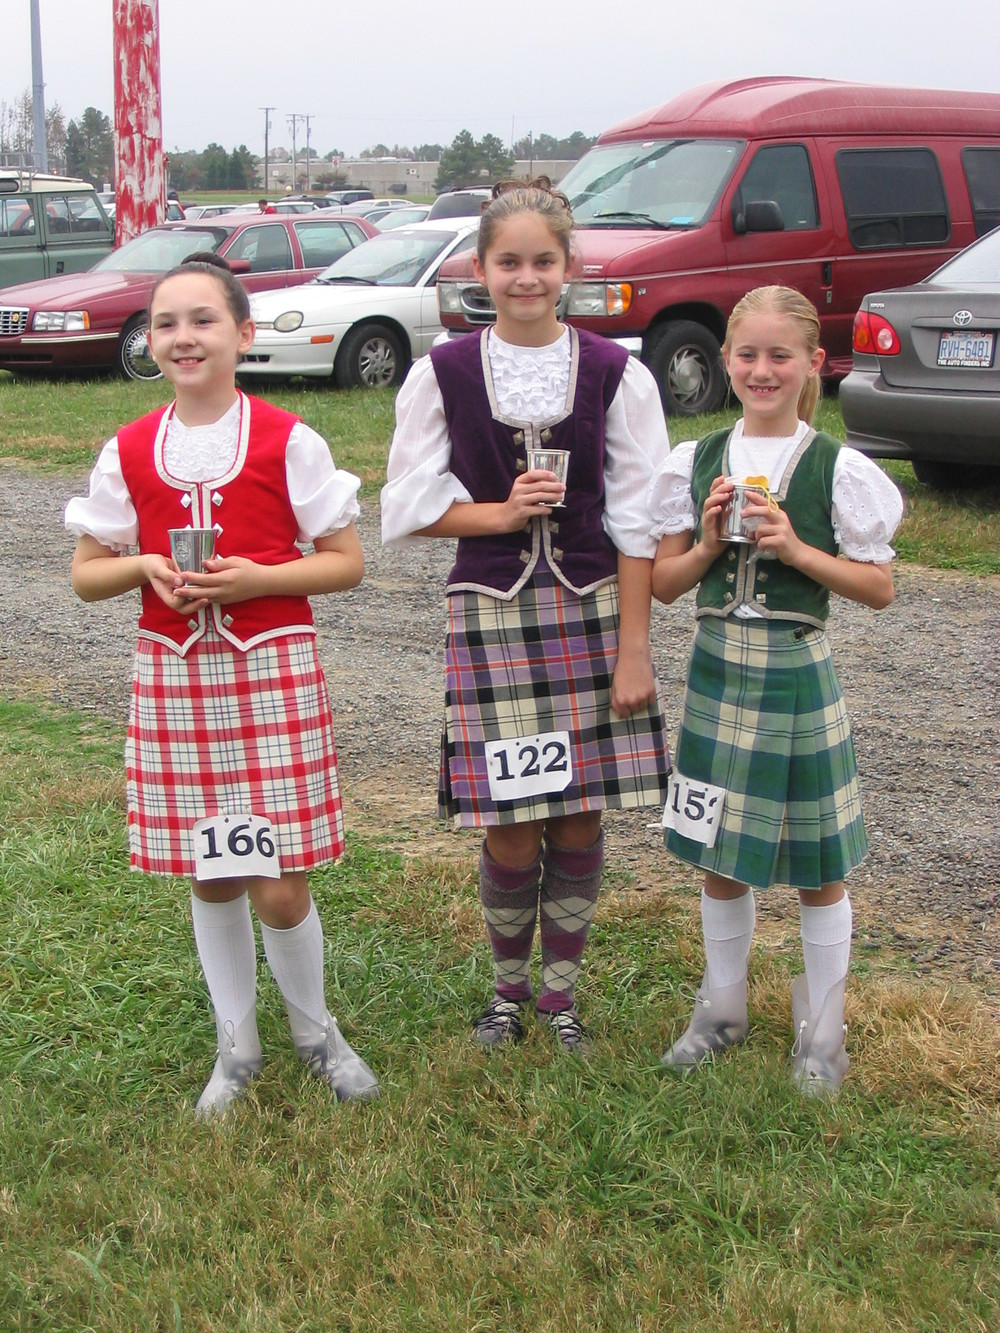 Marleigh (center) placed 1st in her class, Richmond games 2003